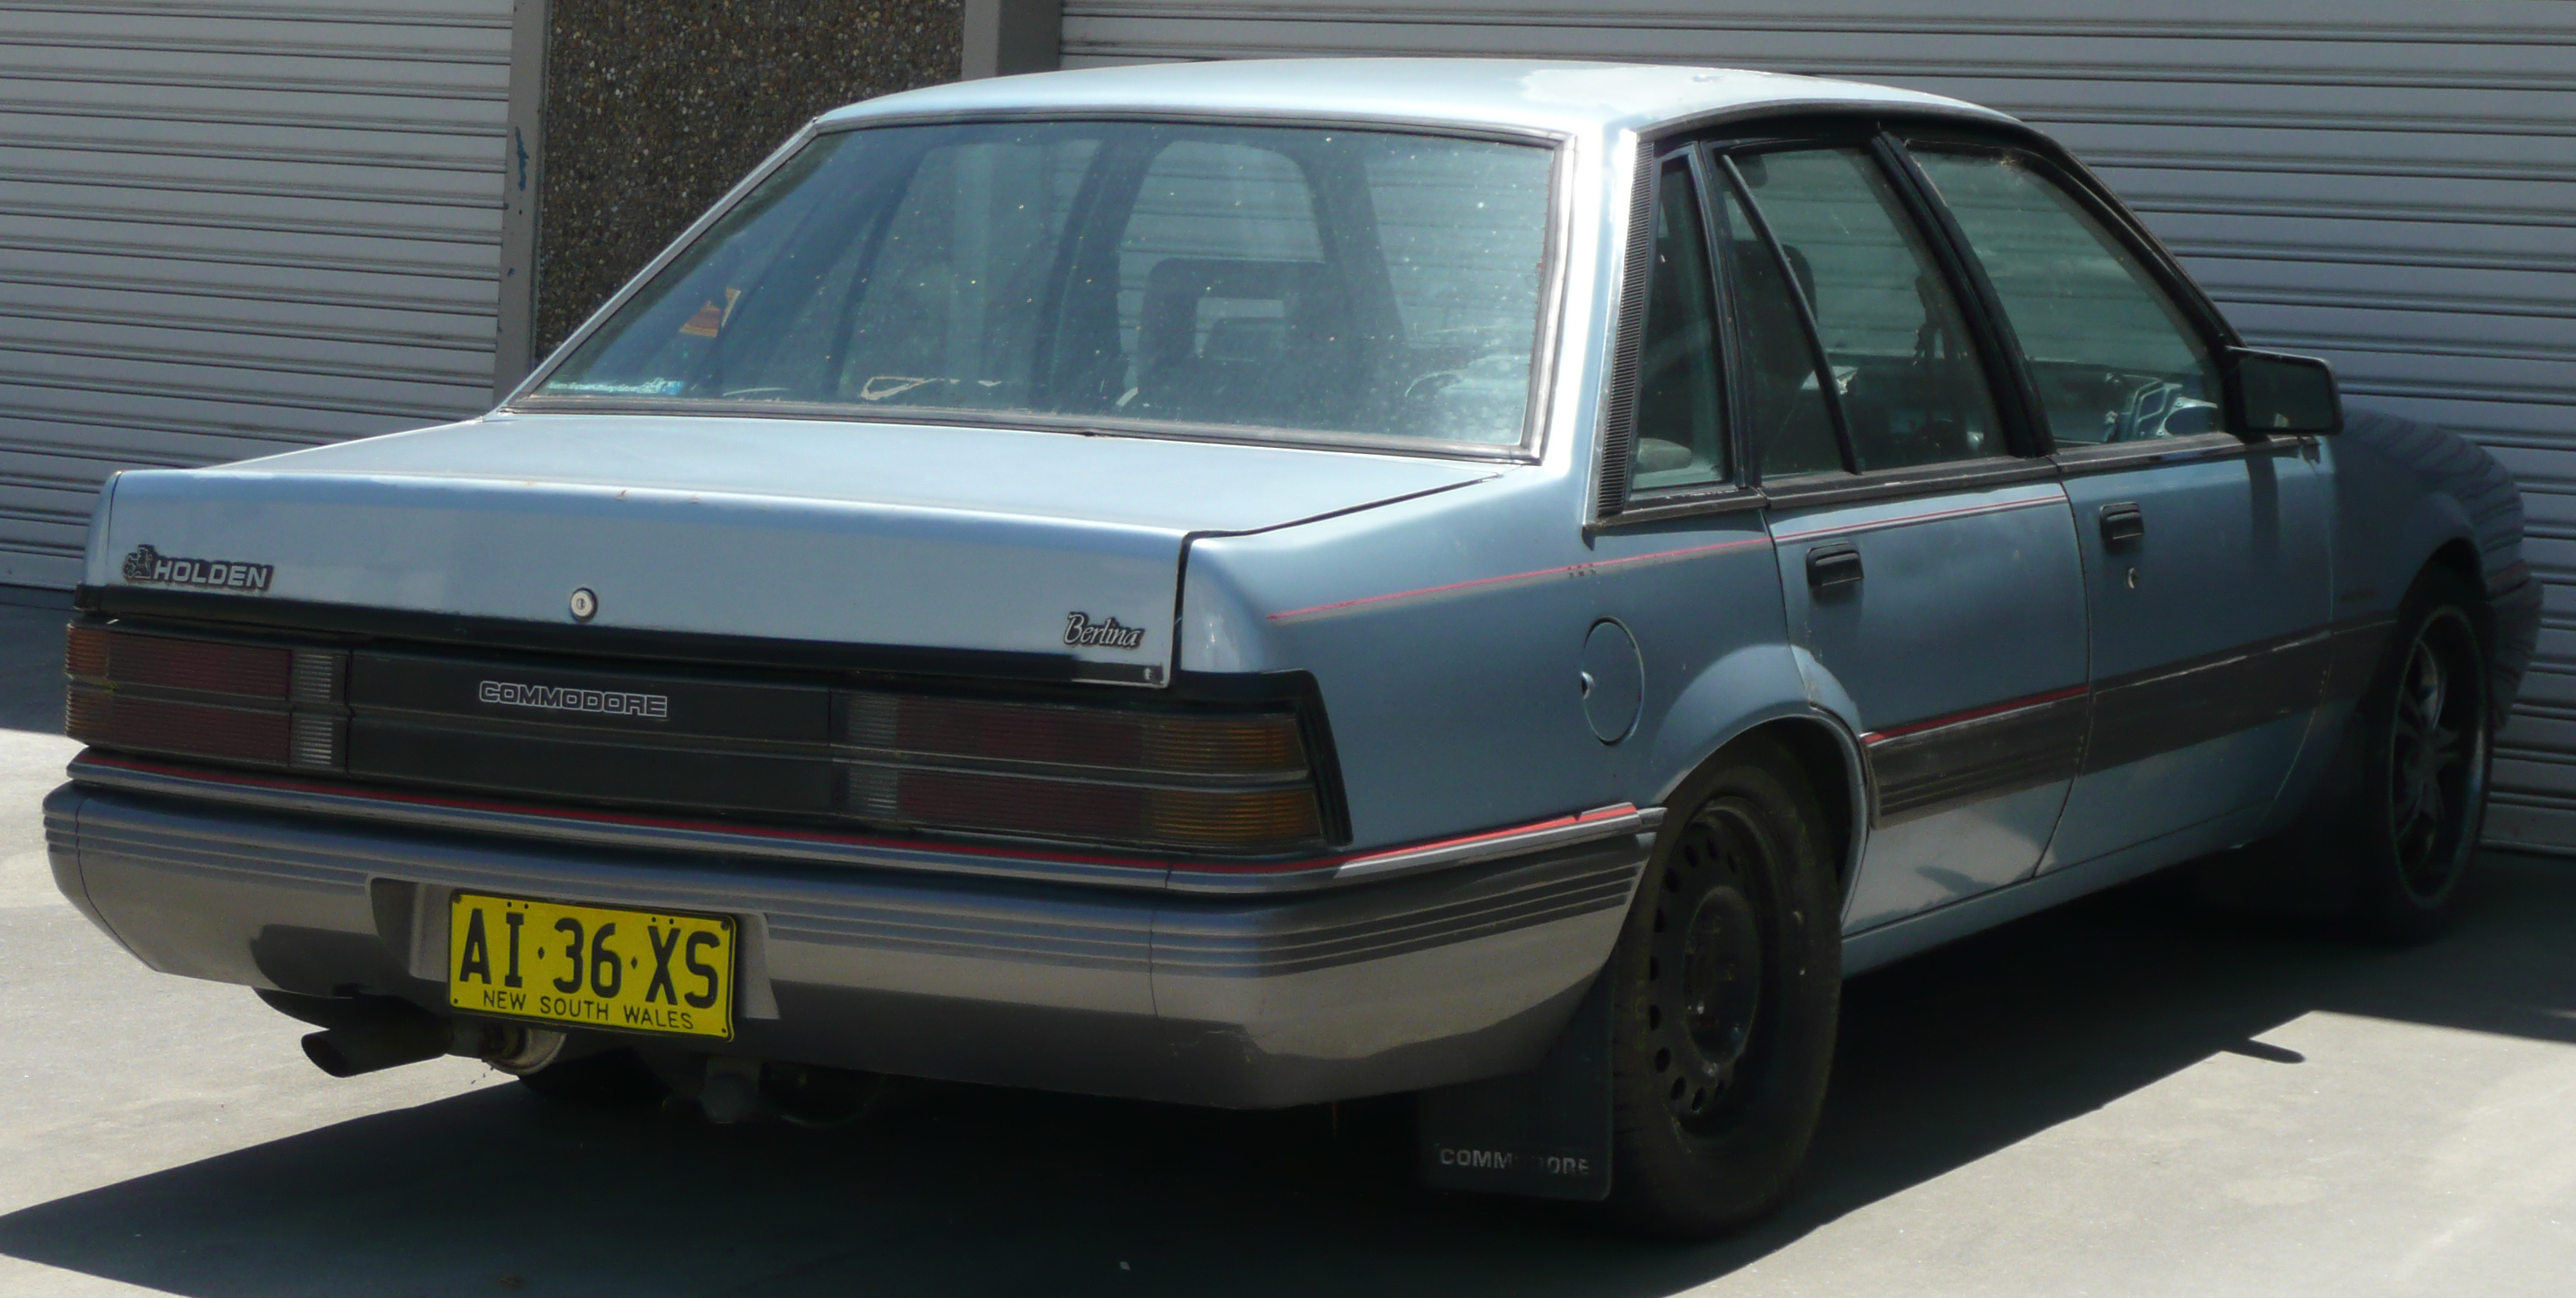 1986 Holden Vl: File:1986-1988 Holden VL Commodore Berlina Sedan 02.jpg